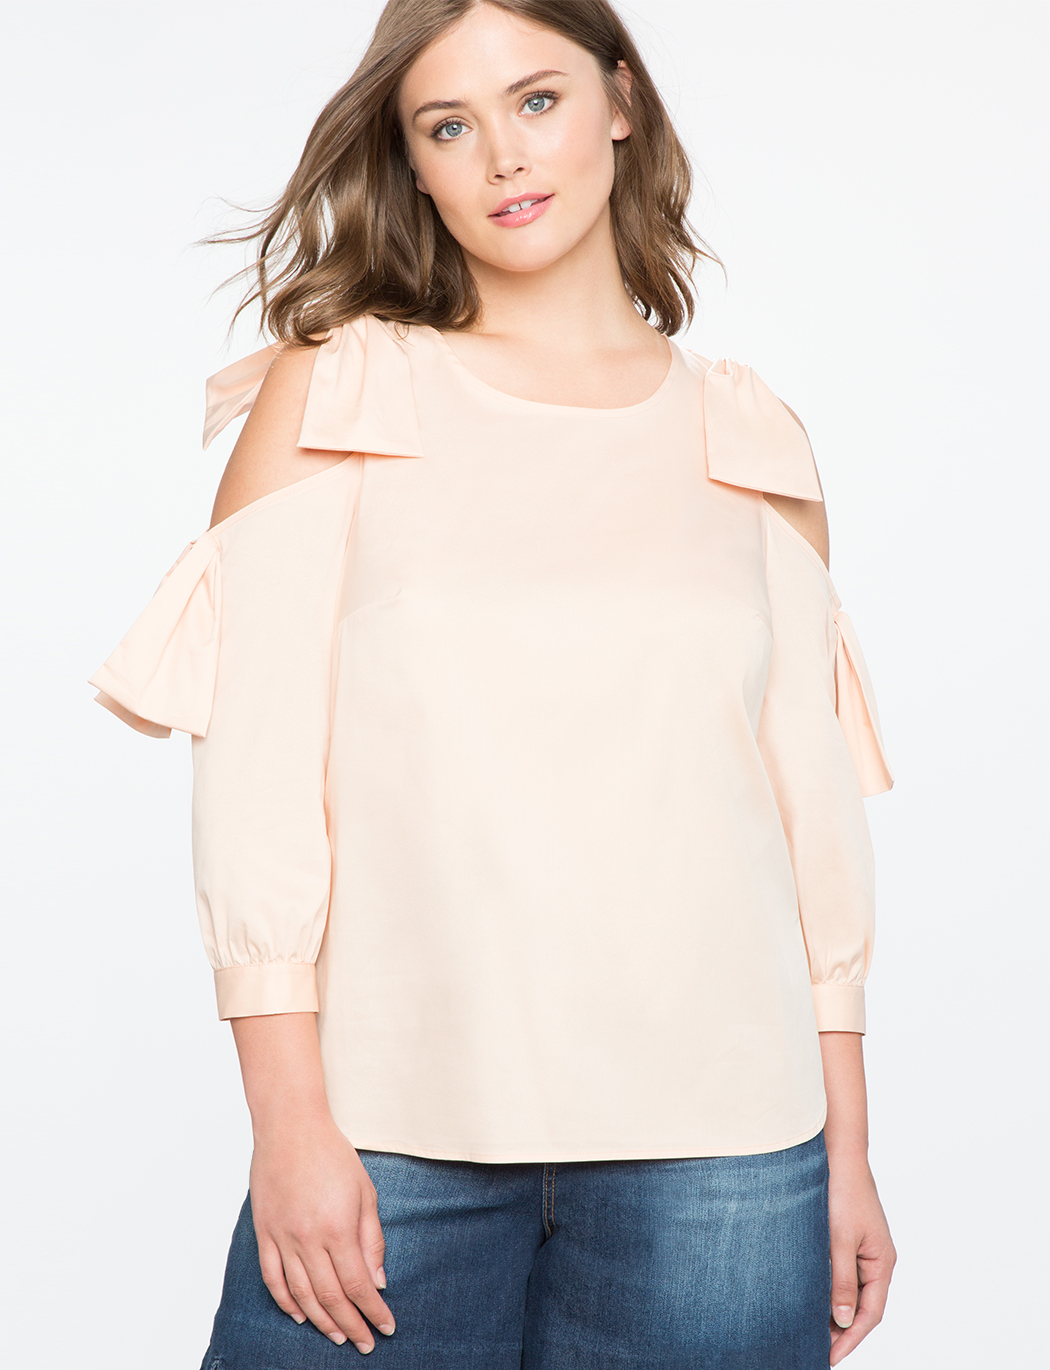 e0c7f1af7dff7 Cutout Shoulder Top with Bow Detail